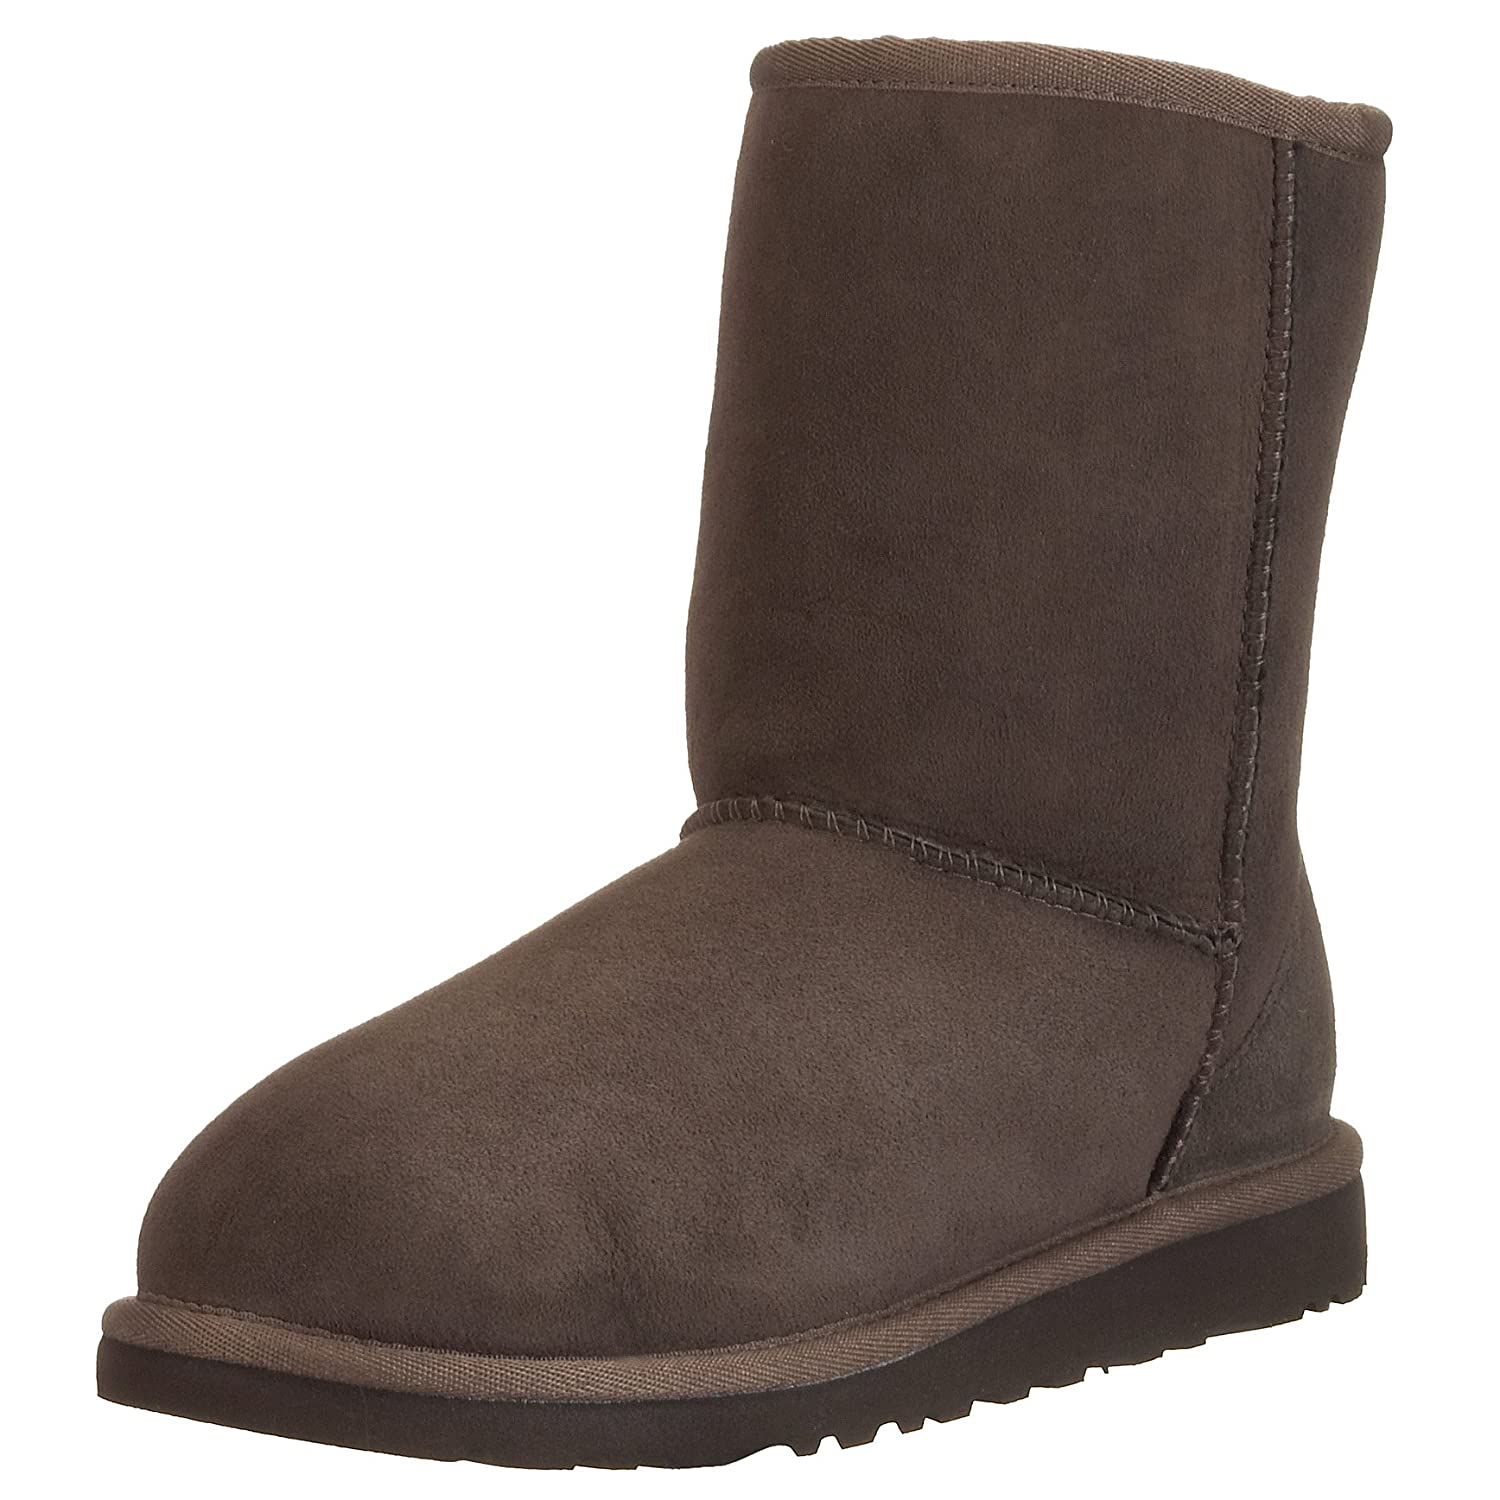 0fbeedd9a48 Boots 5251 K UGG CLASSIC CHOCOLATE BROWN 31 Brown: Amazon.co.uk ...